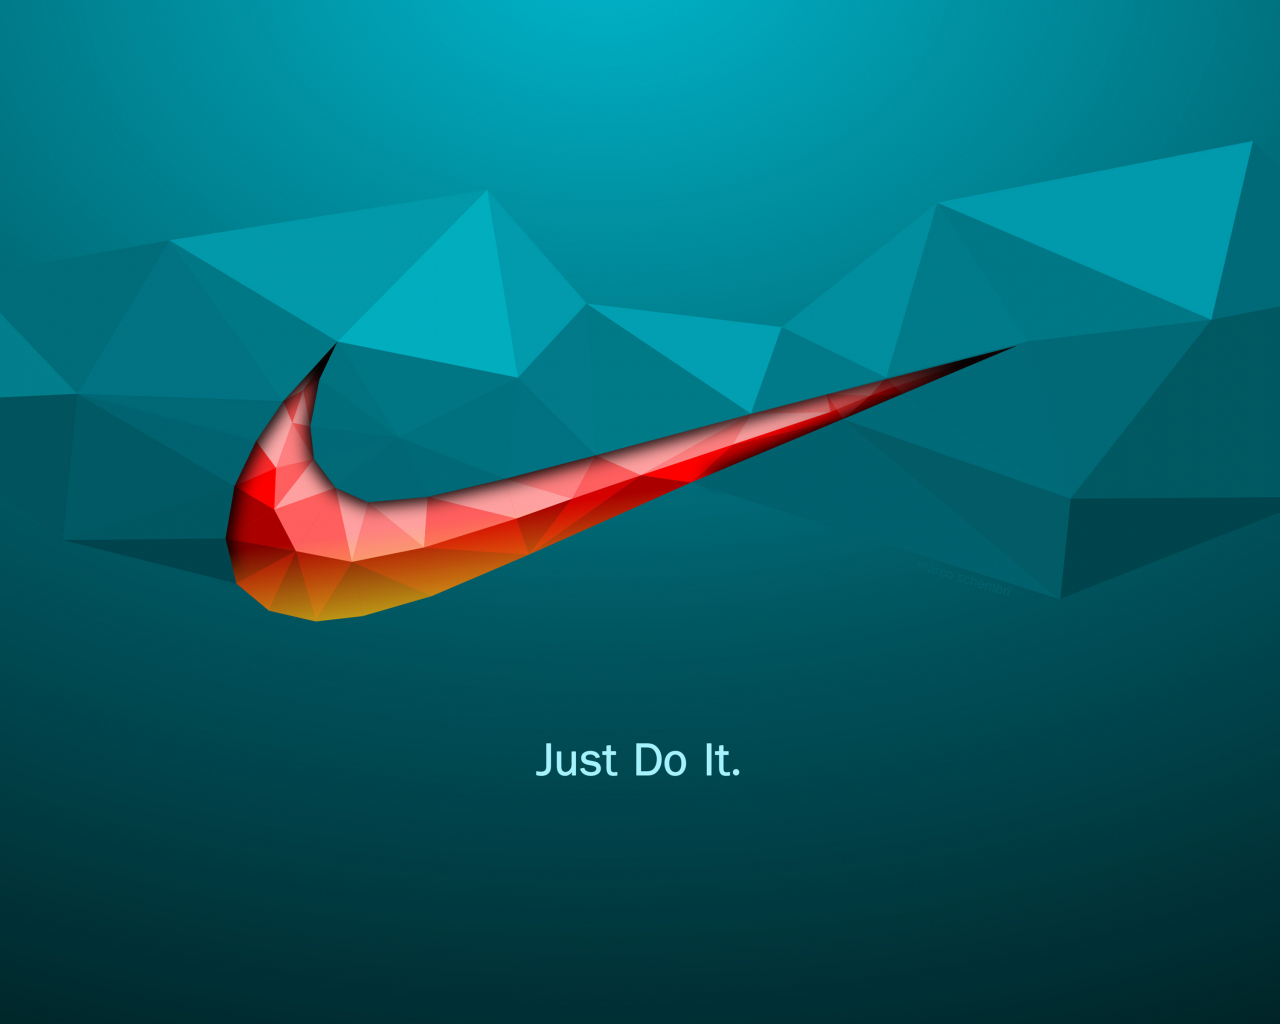 1280x1024 wallpaper Just do it, quotes, Nike, logo, abstract